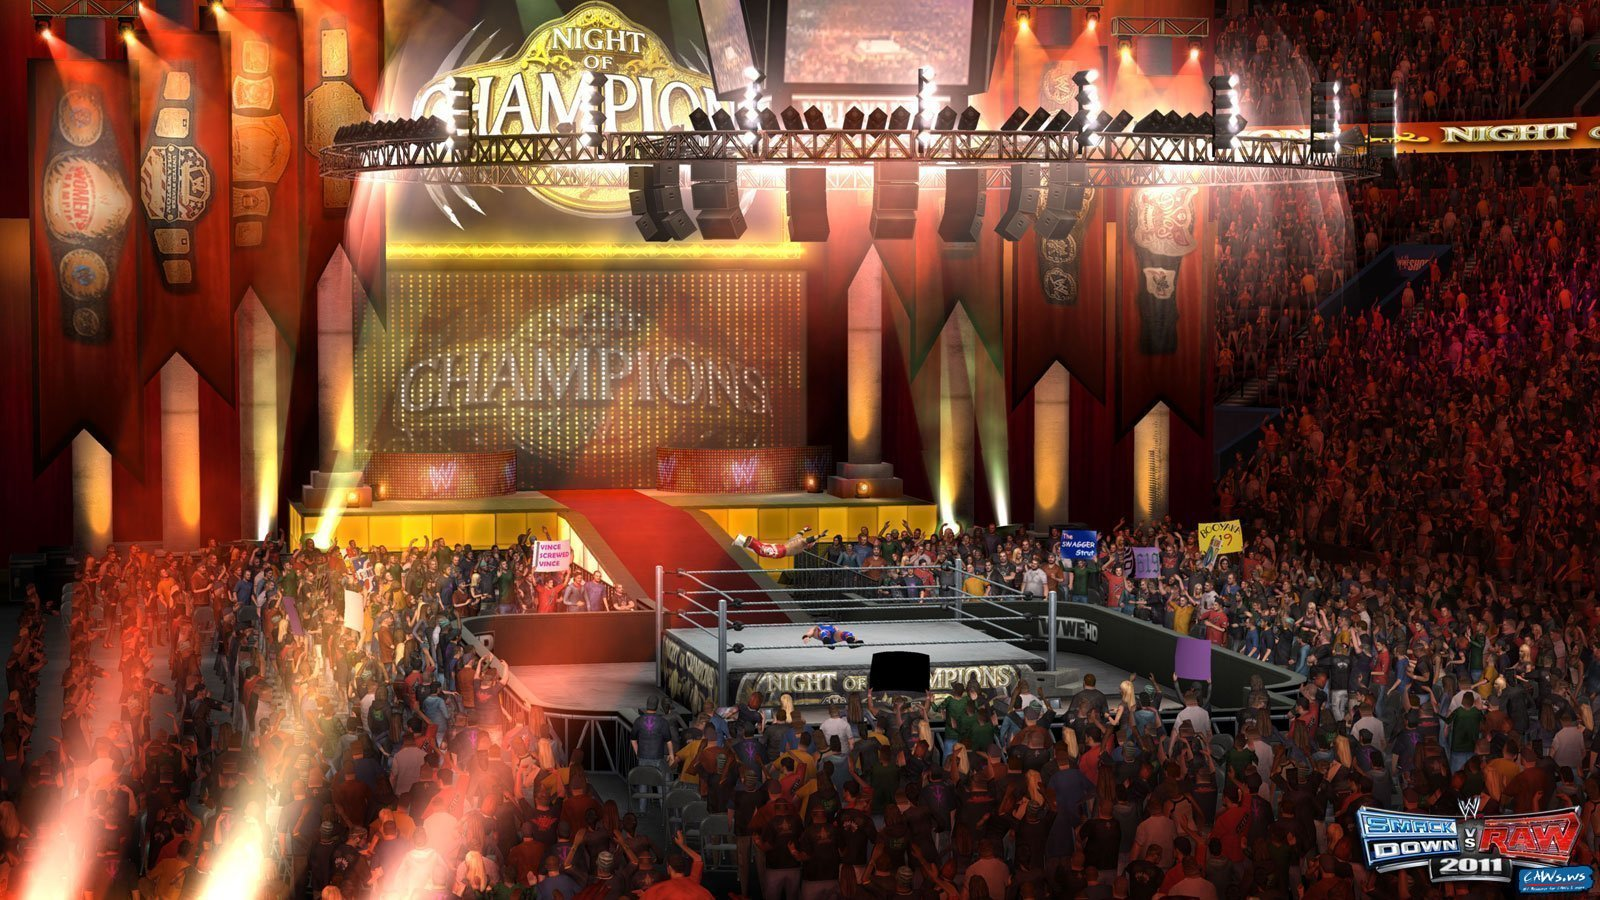 wwe_svr2011_nightofchampions_arena